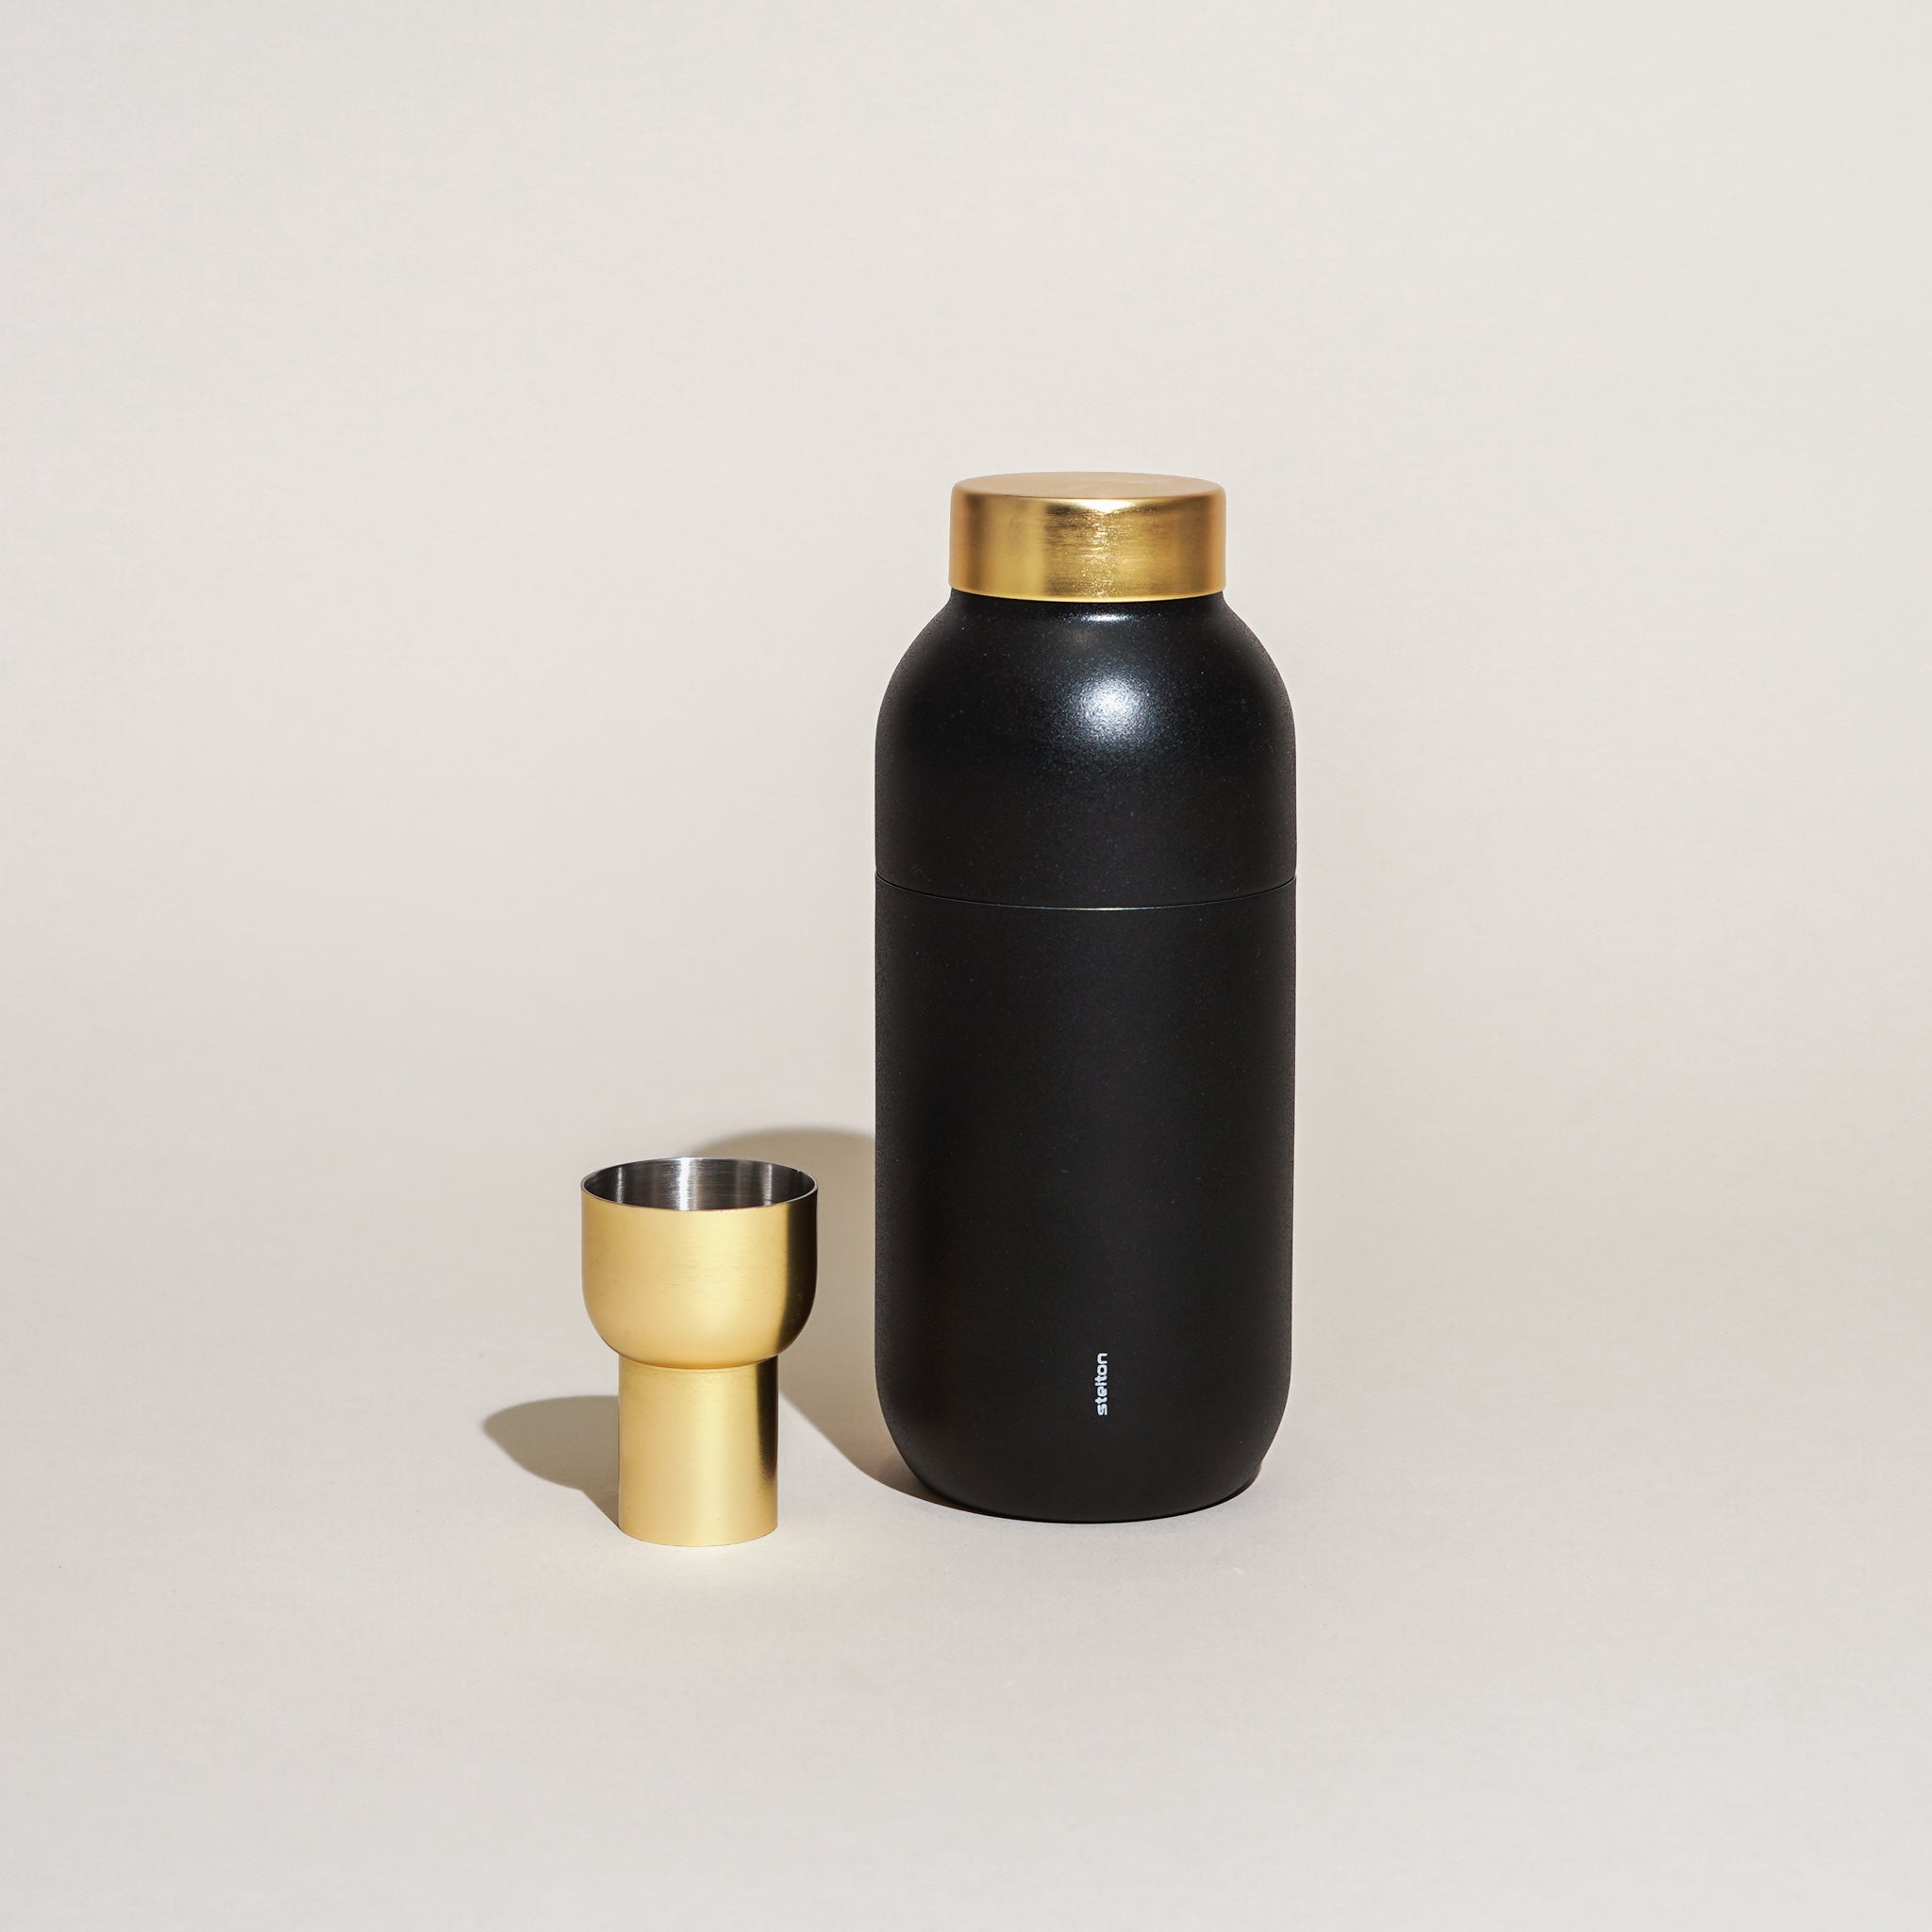 The Collar Cocktail Shaker from Stelton.